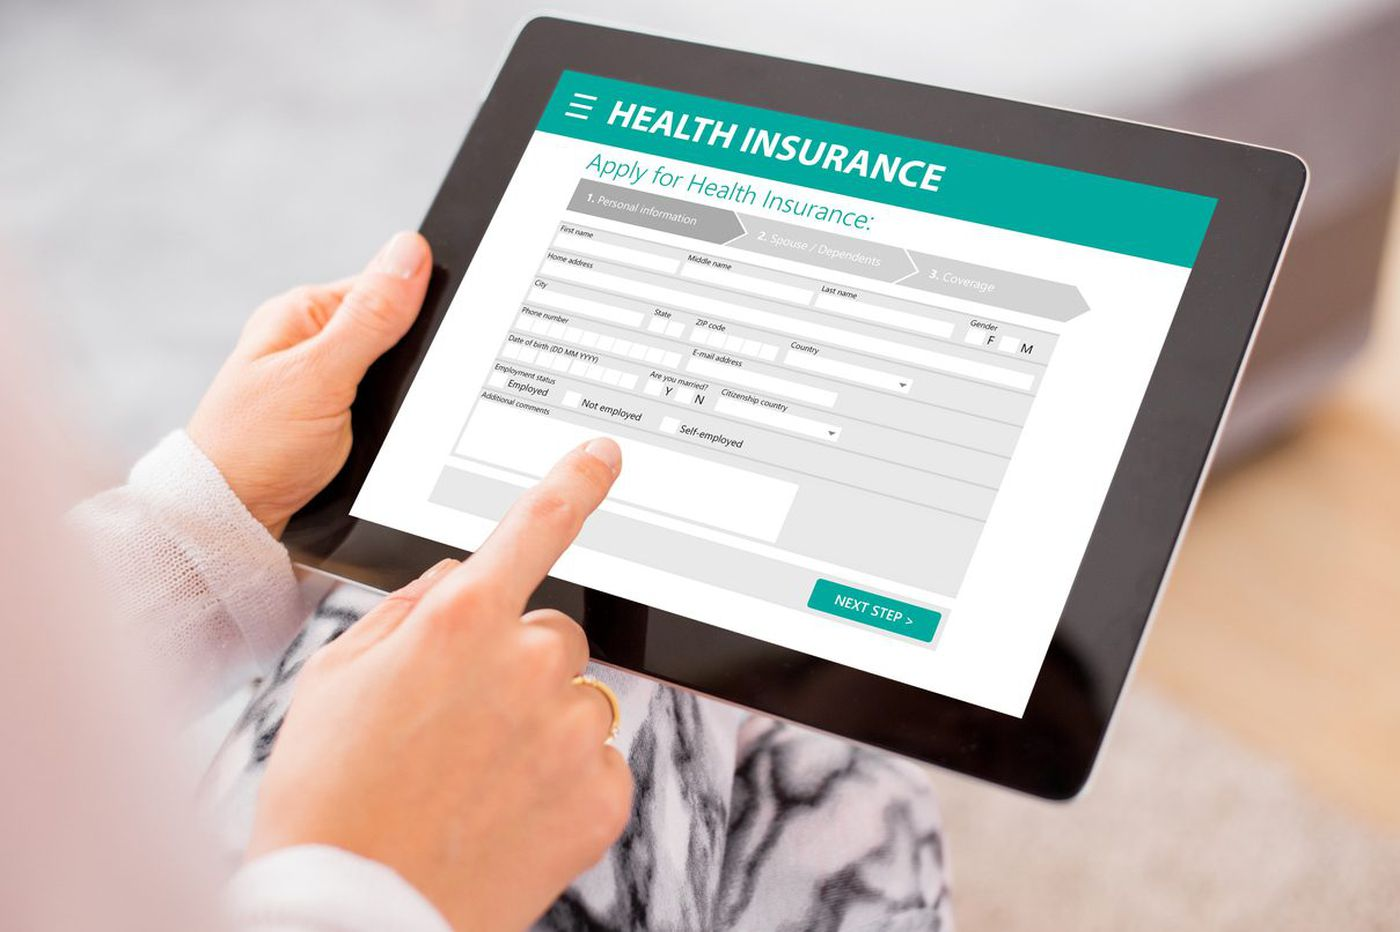 In search of insurance savings, consumers can get unwittingly wedged into narrow-network plans